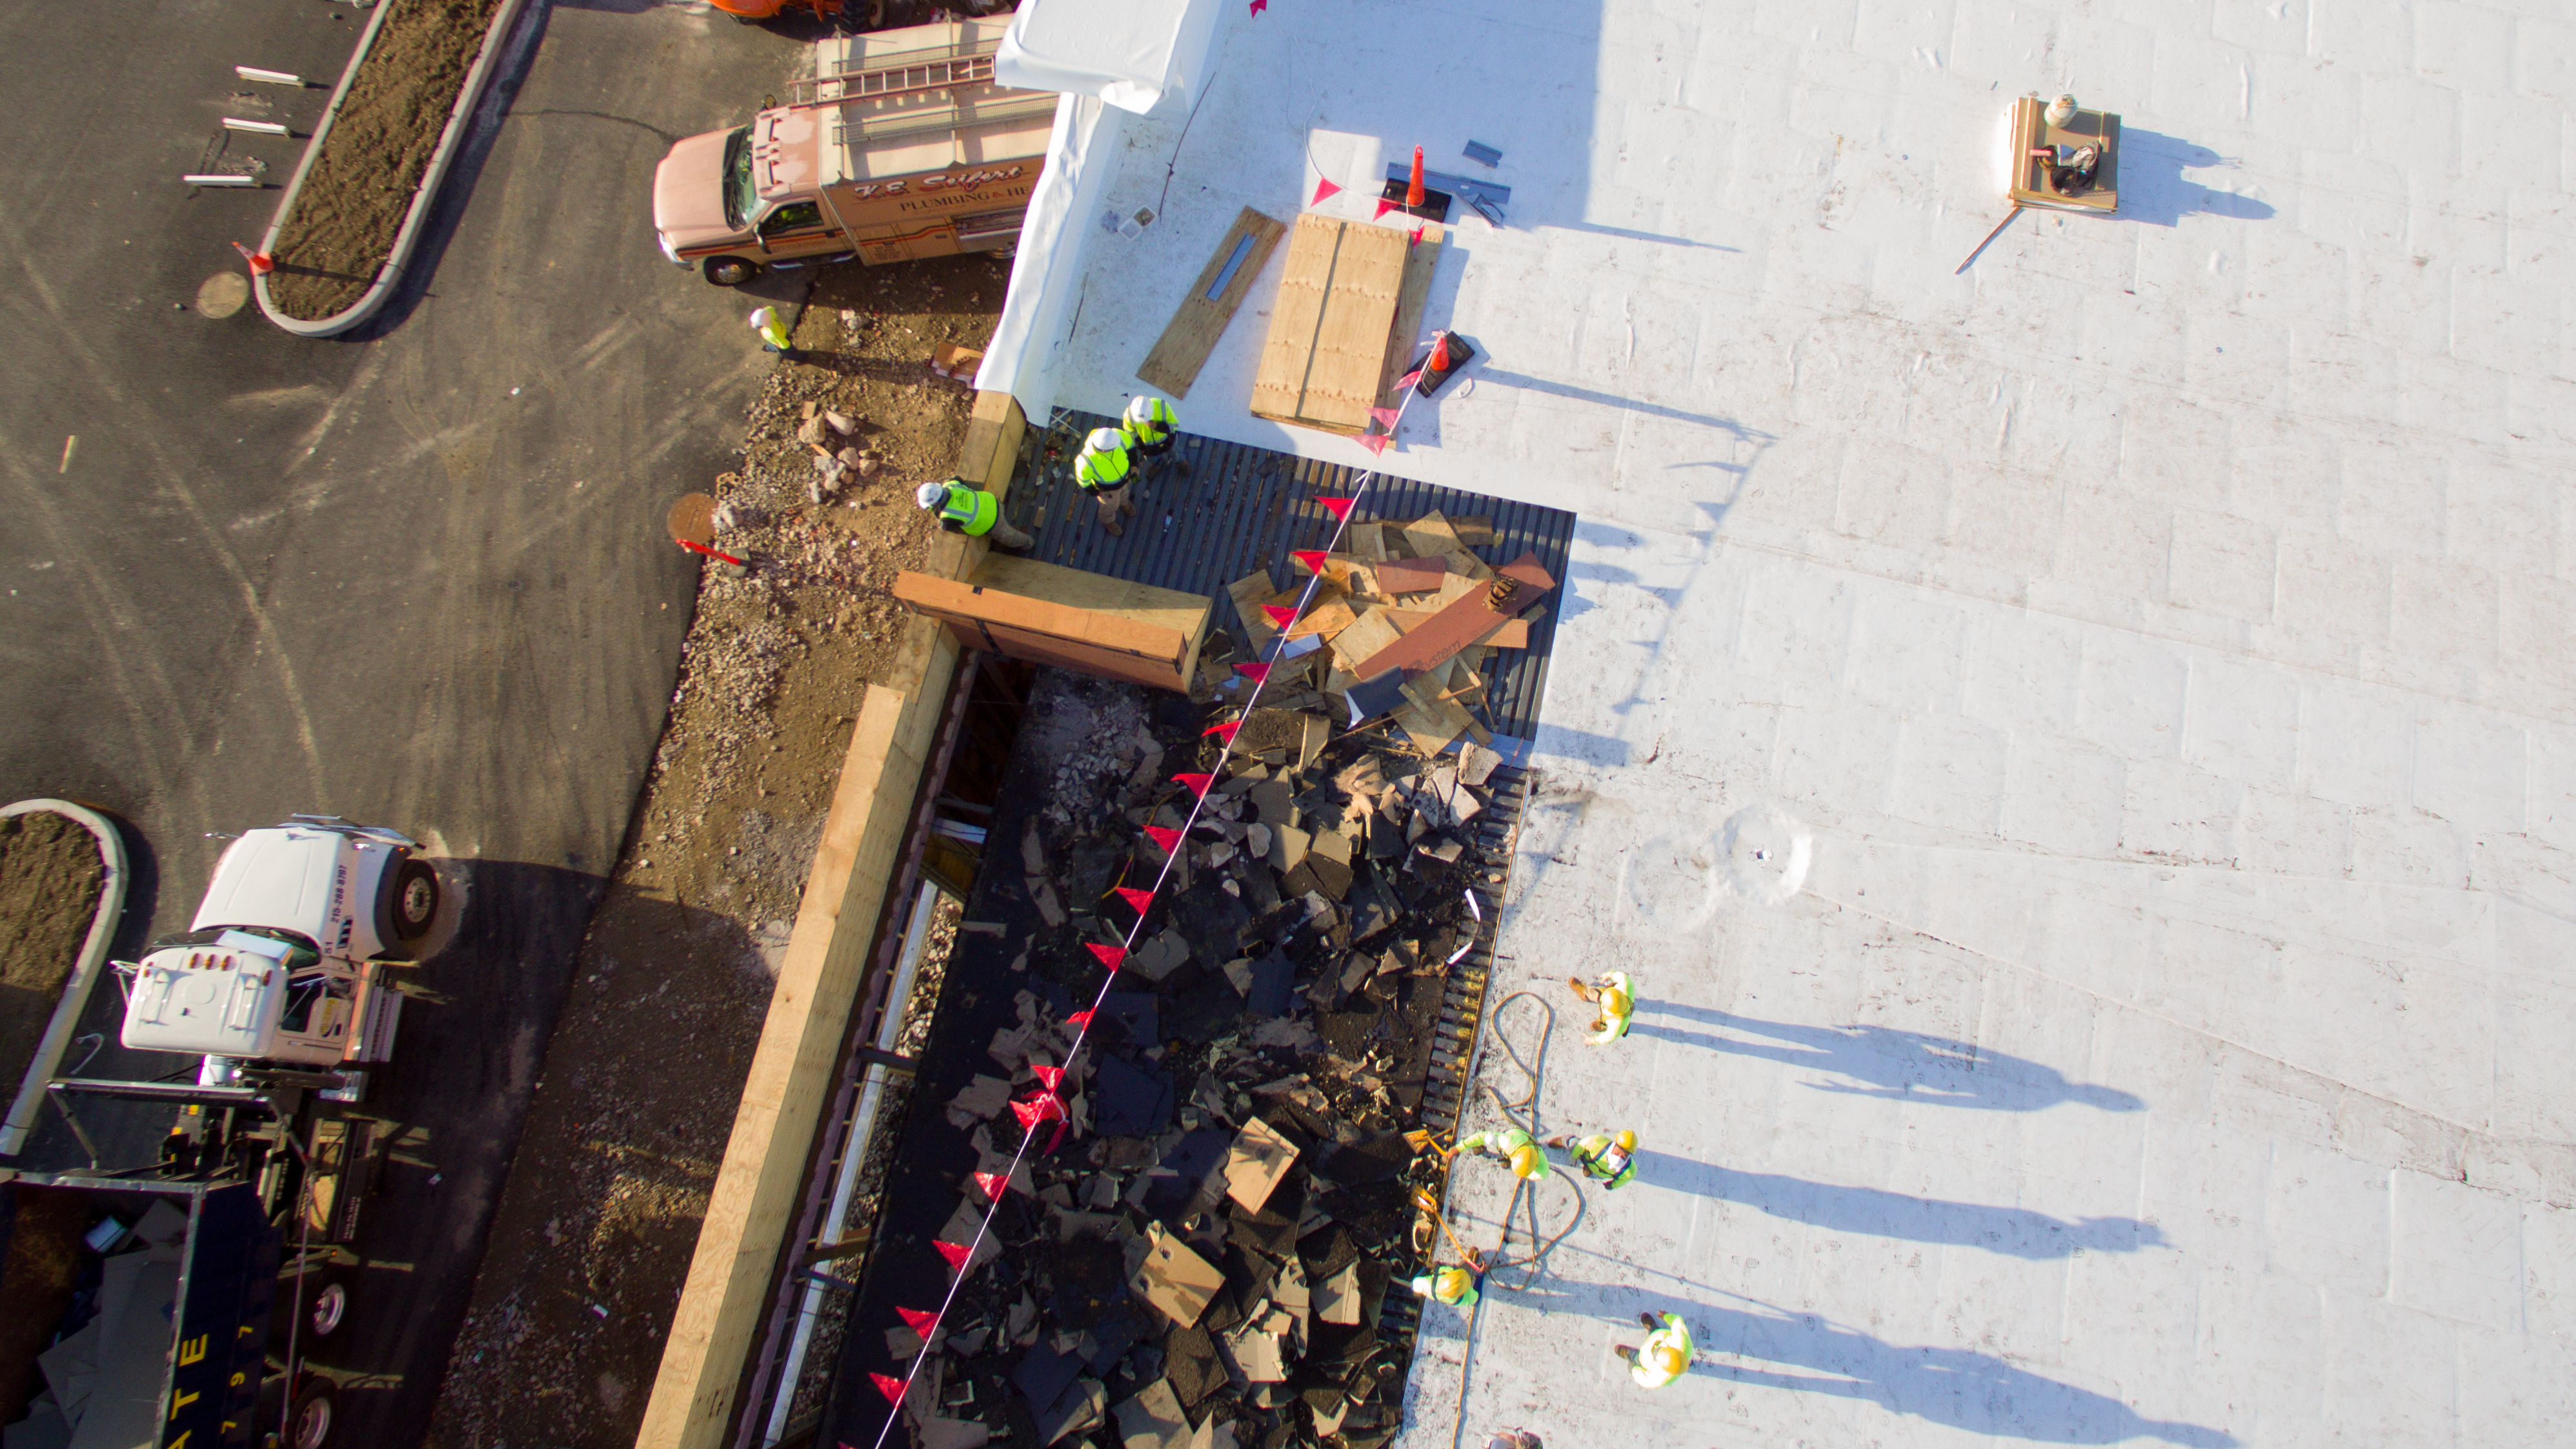 construction-workers-on-rooftop-aerial-view